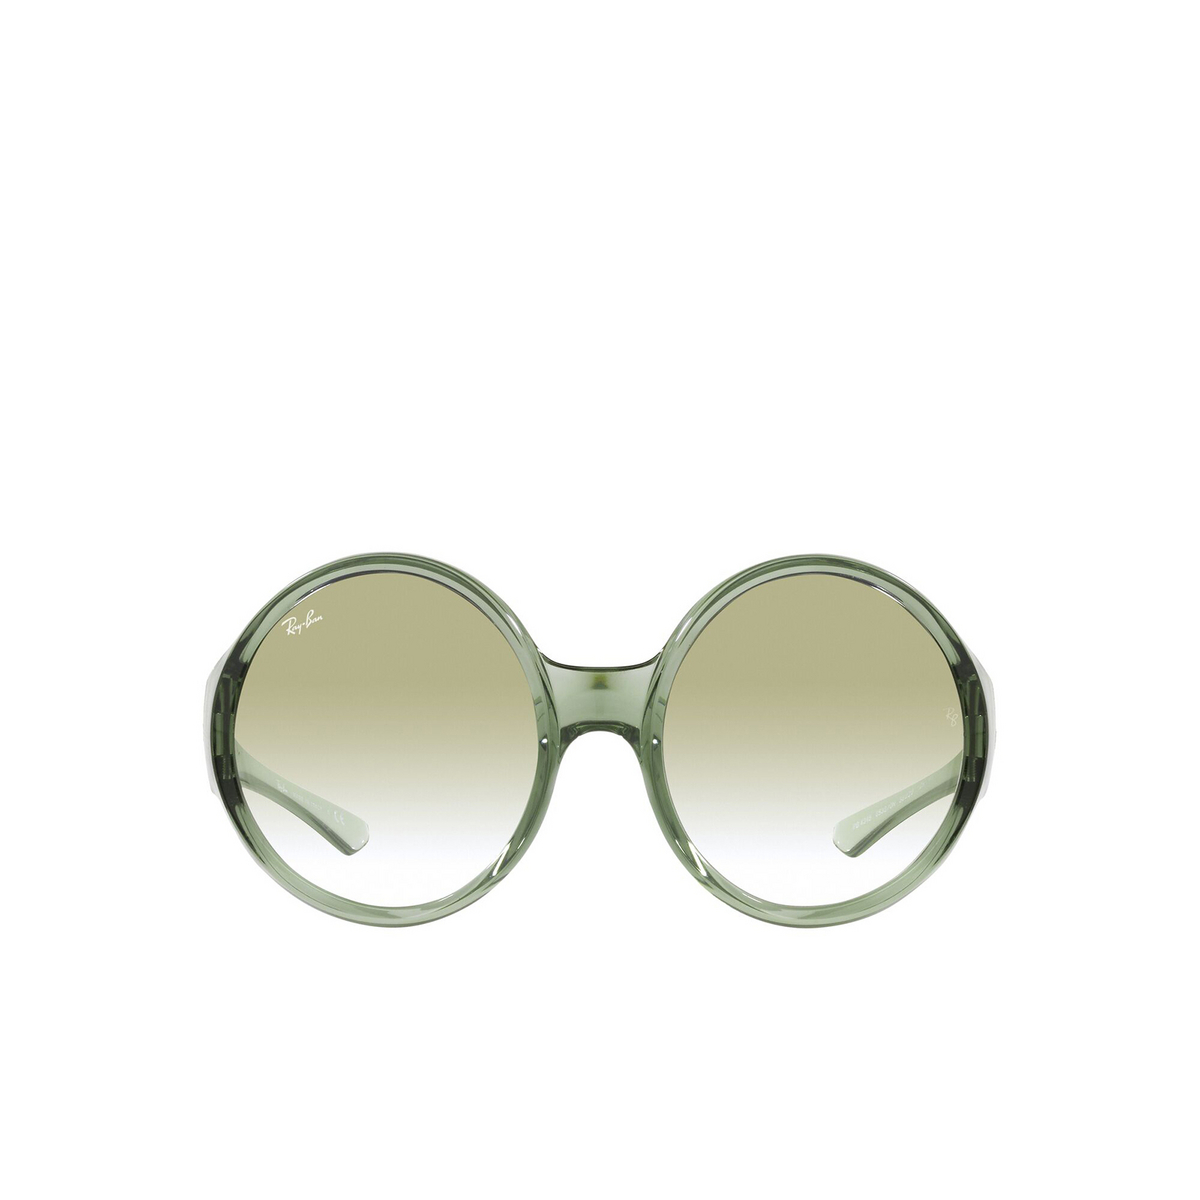 Ray-Ban® Round Sunglasses: RB4345 color Transparent Green 65320N - front view.